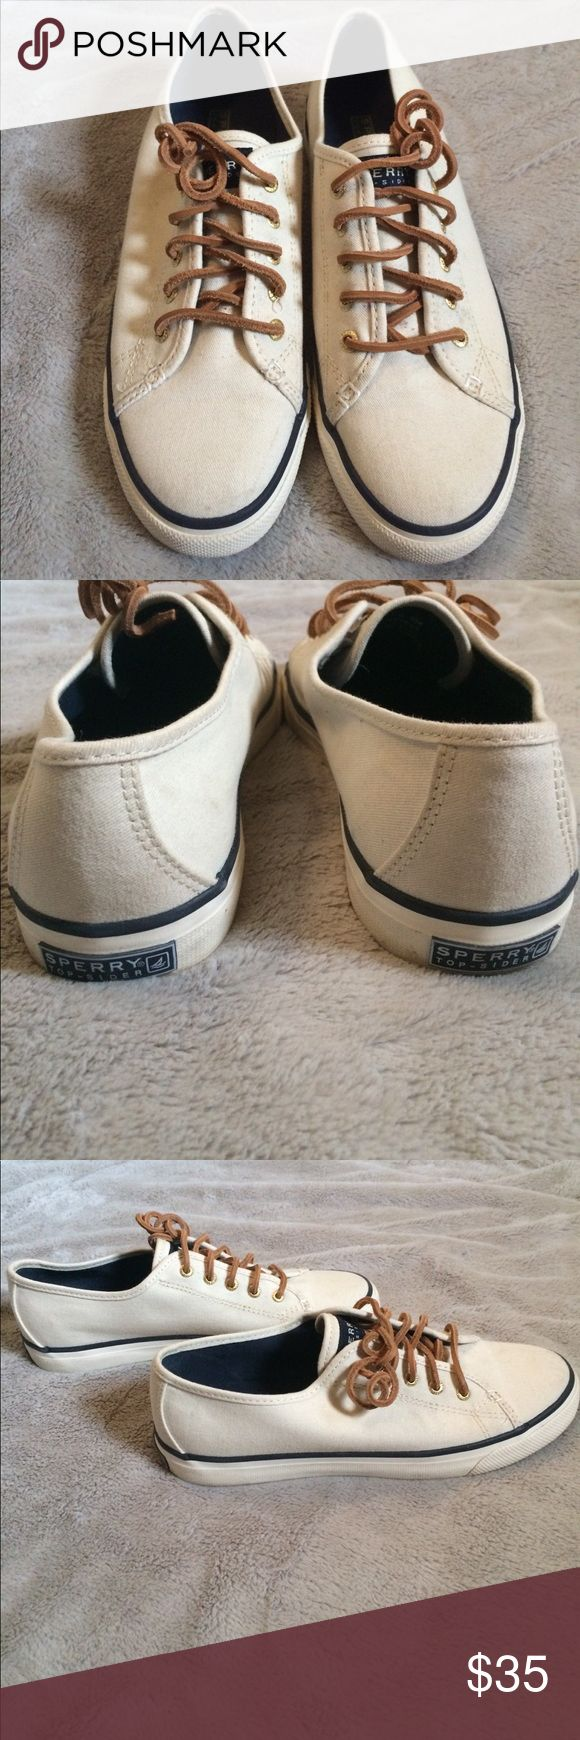 White, blue lined sneakers with brown shoelaces Slightly worn. White, blue lined sneakers with brown shoelaces Sperry Shoes Sneakers